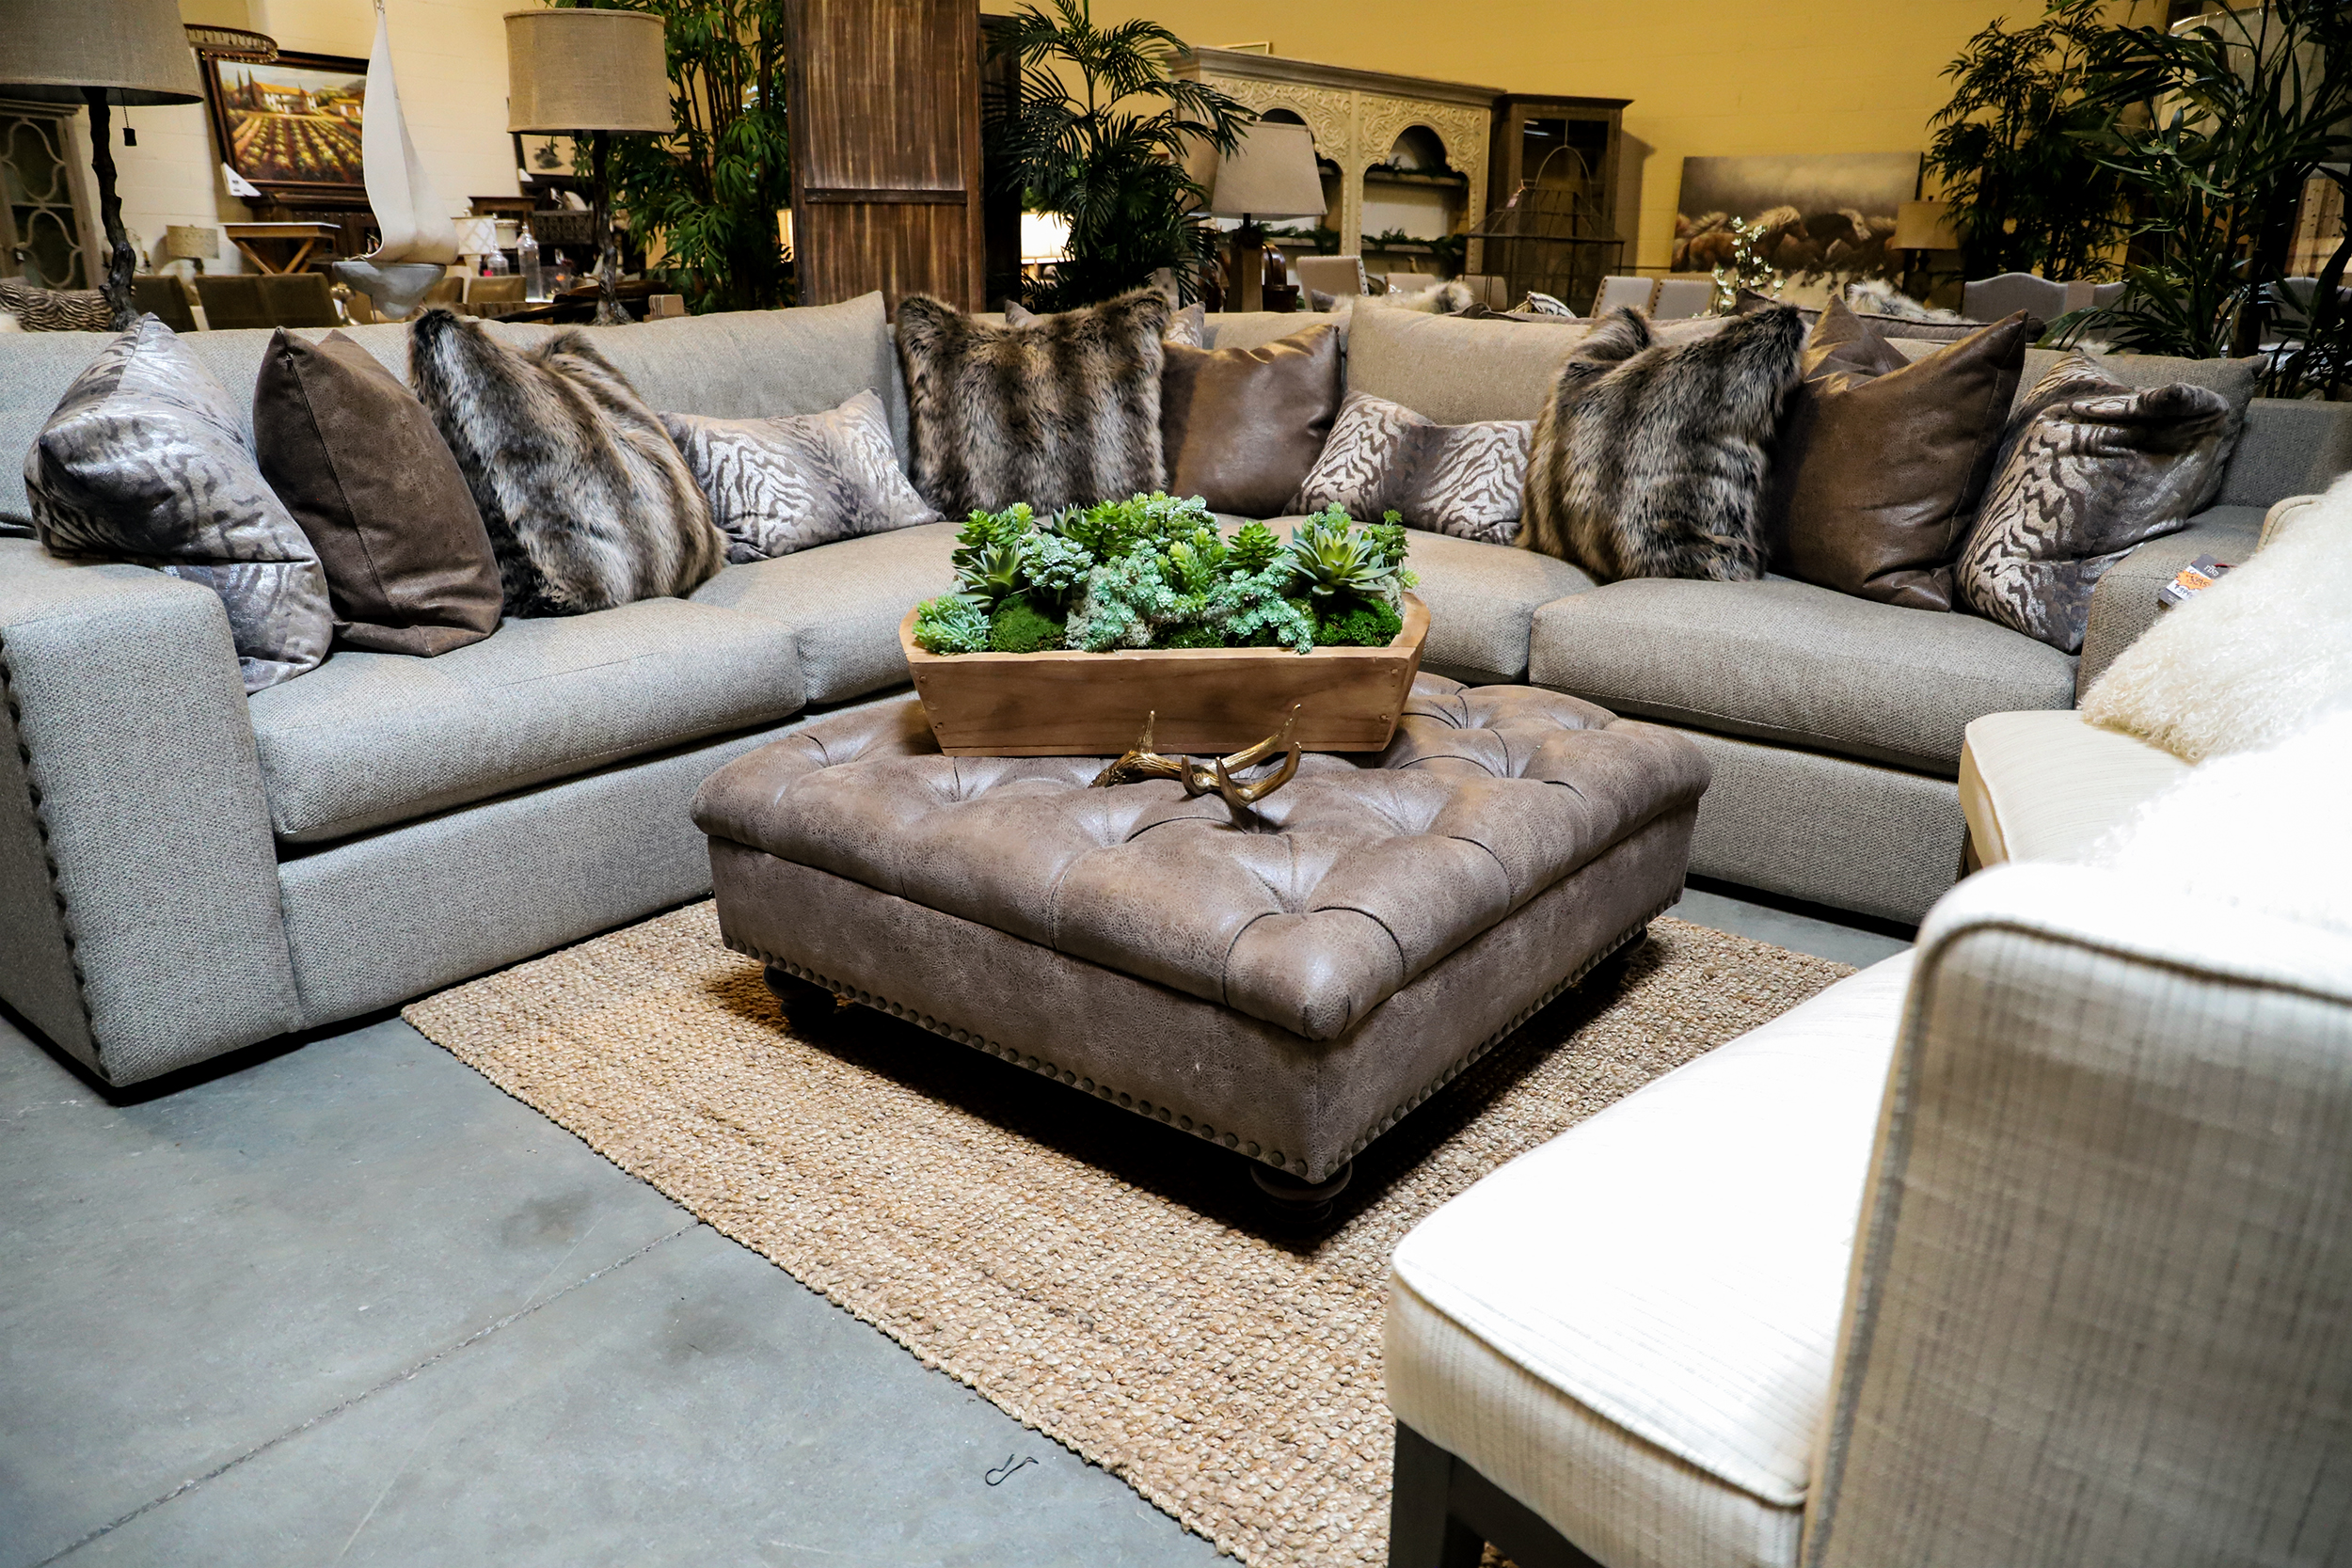 How To Pull Off A Big Sectional In A Small Space The Find Reno